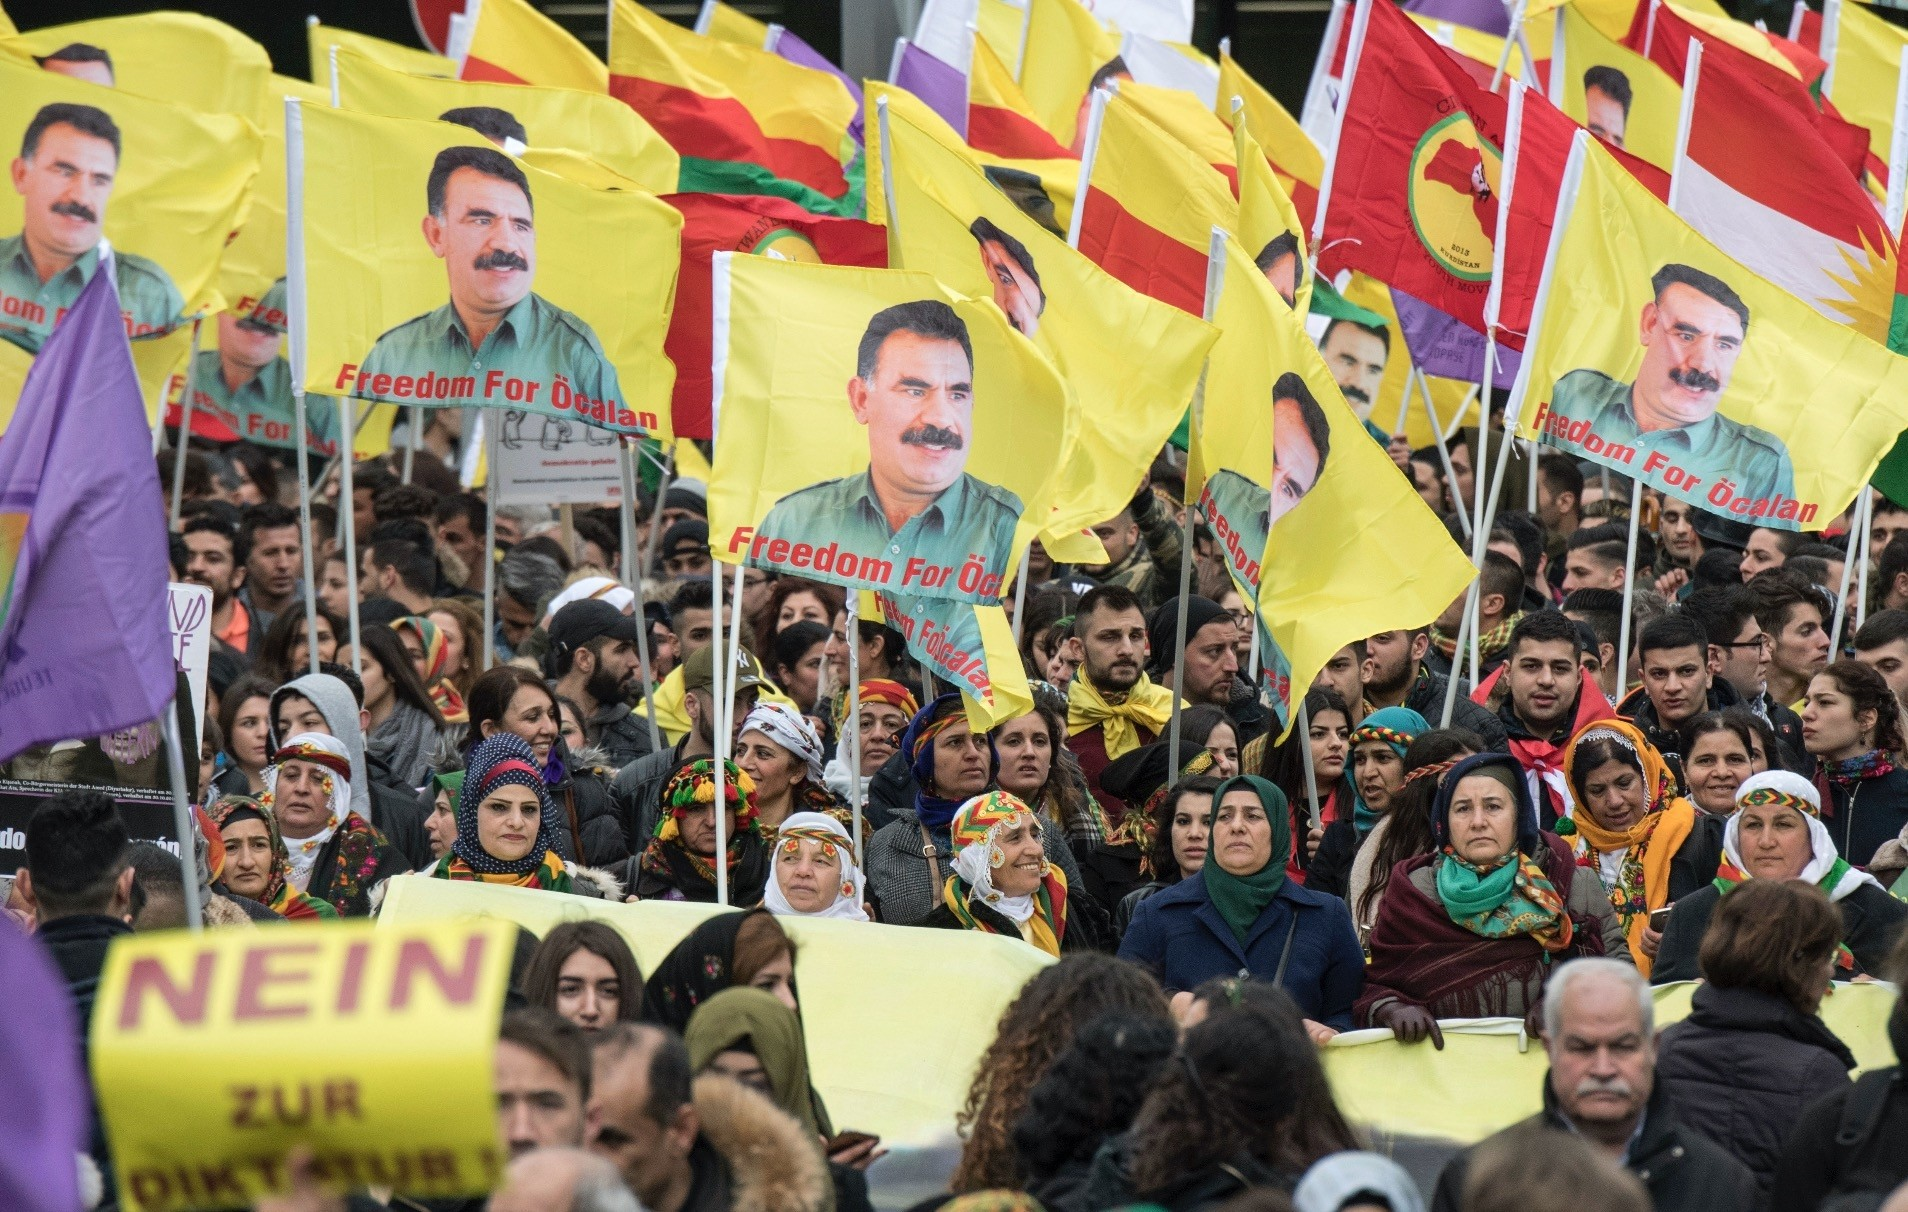 PKK terrorist group supporters seen in Frankfurt, Germany waving flags with portraits of the imprisoned PKK leader Abdullah u00d6calan, who is responsible for killing hundreds of Kurdish and Turkish civilians and security forces, March 18.